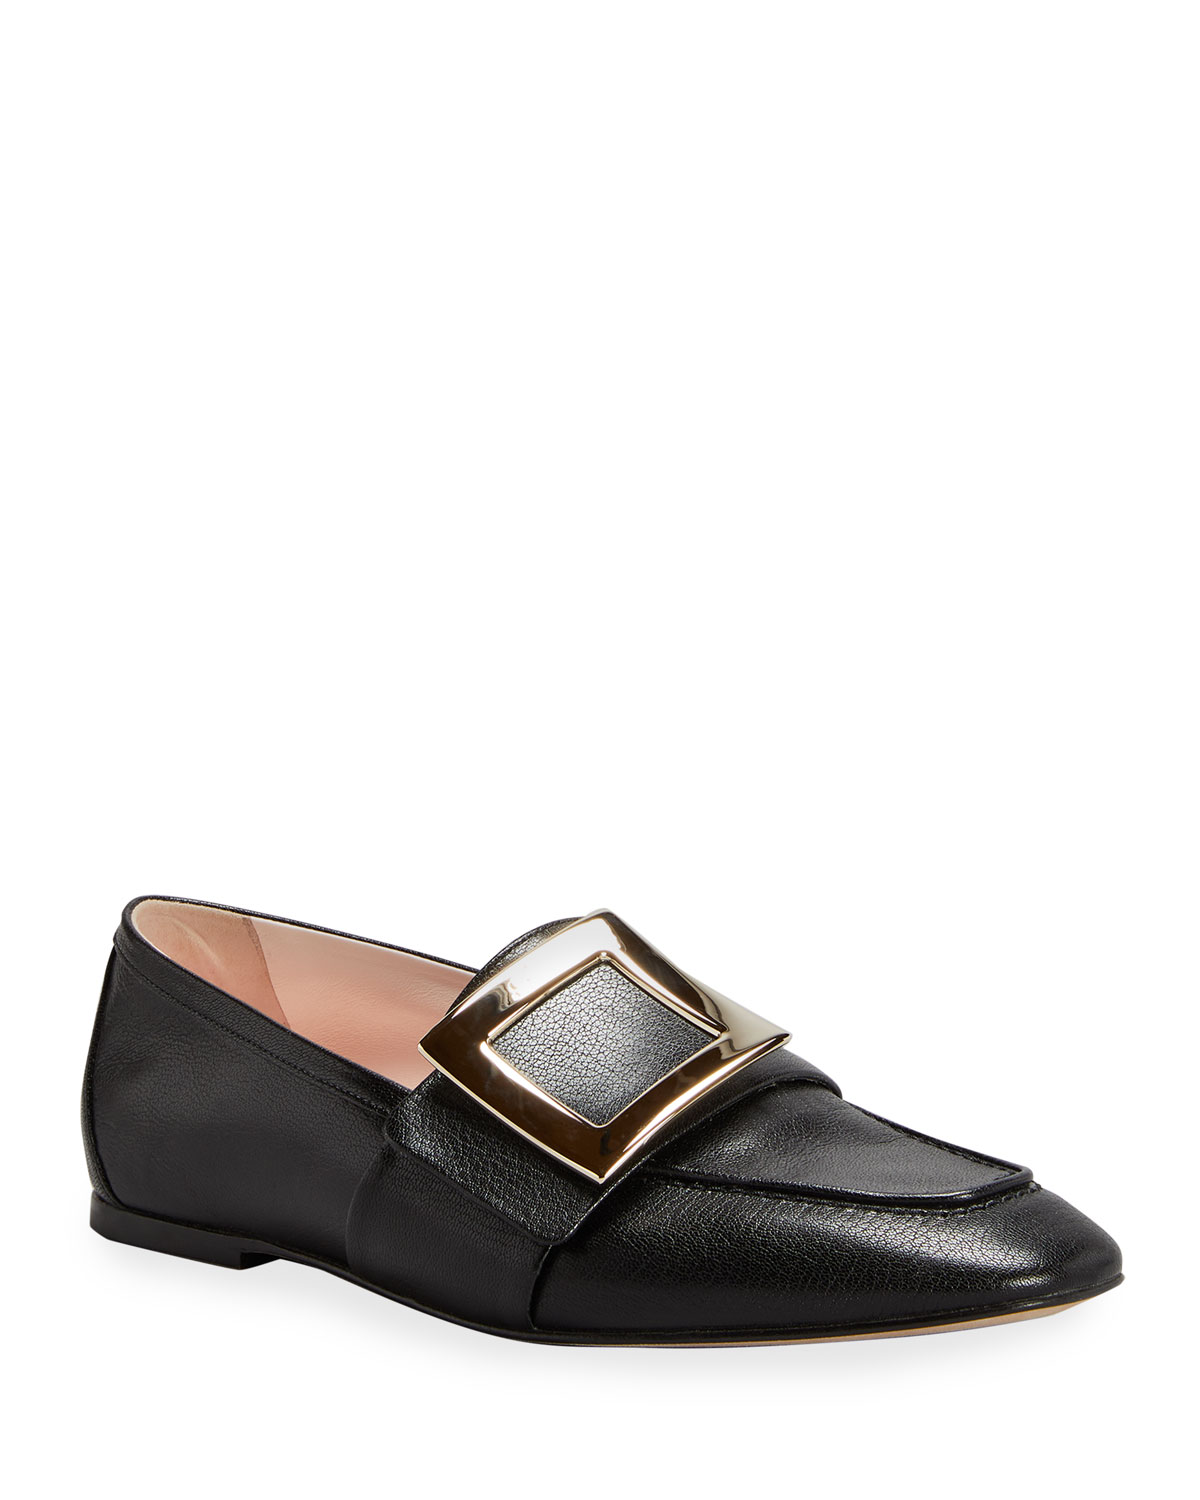 10mm Leather Buckle Flat Loafers